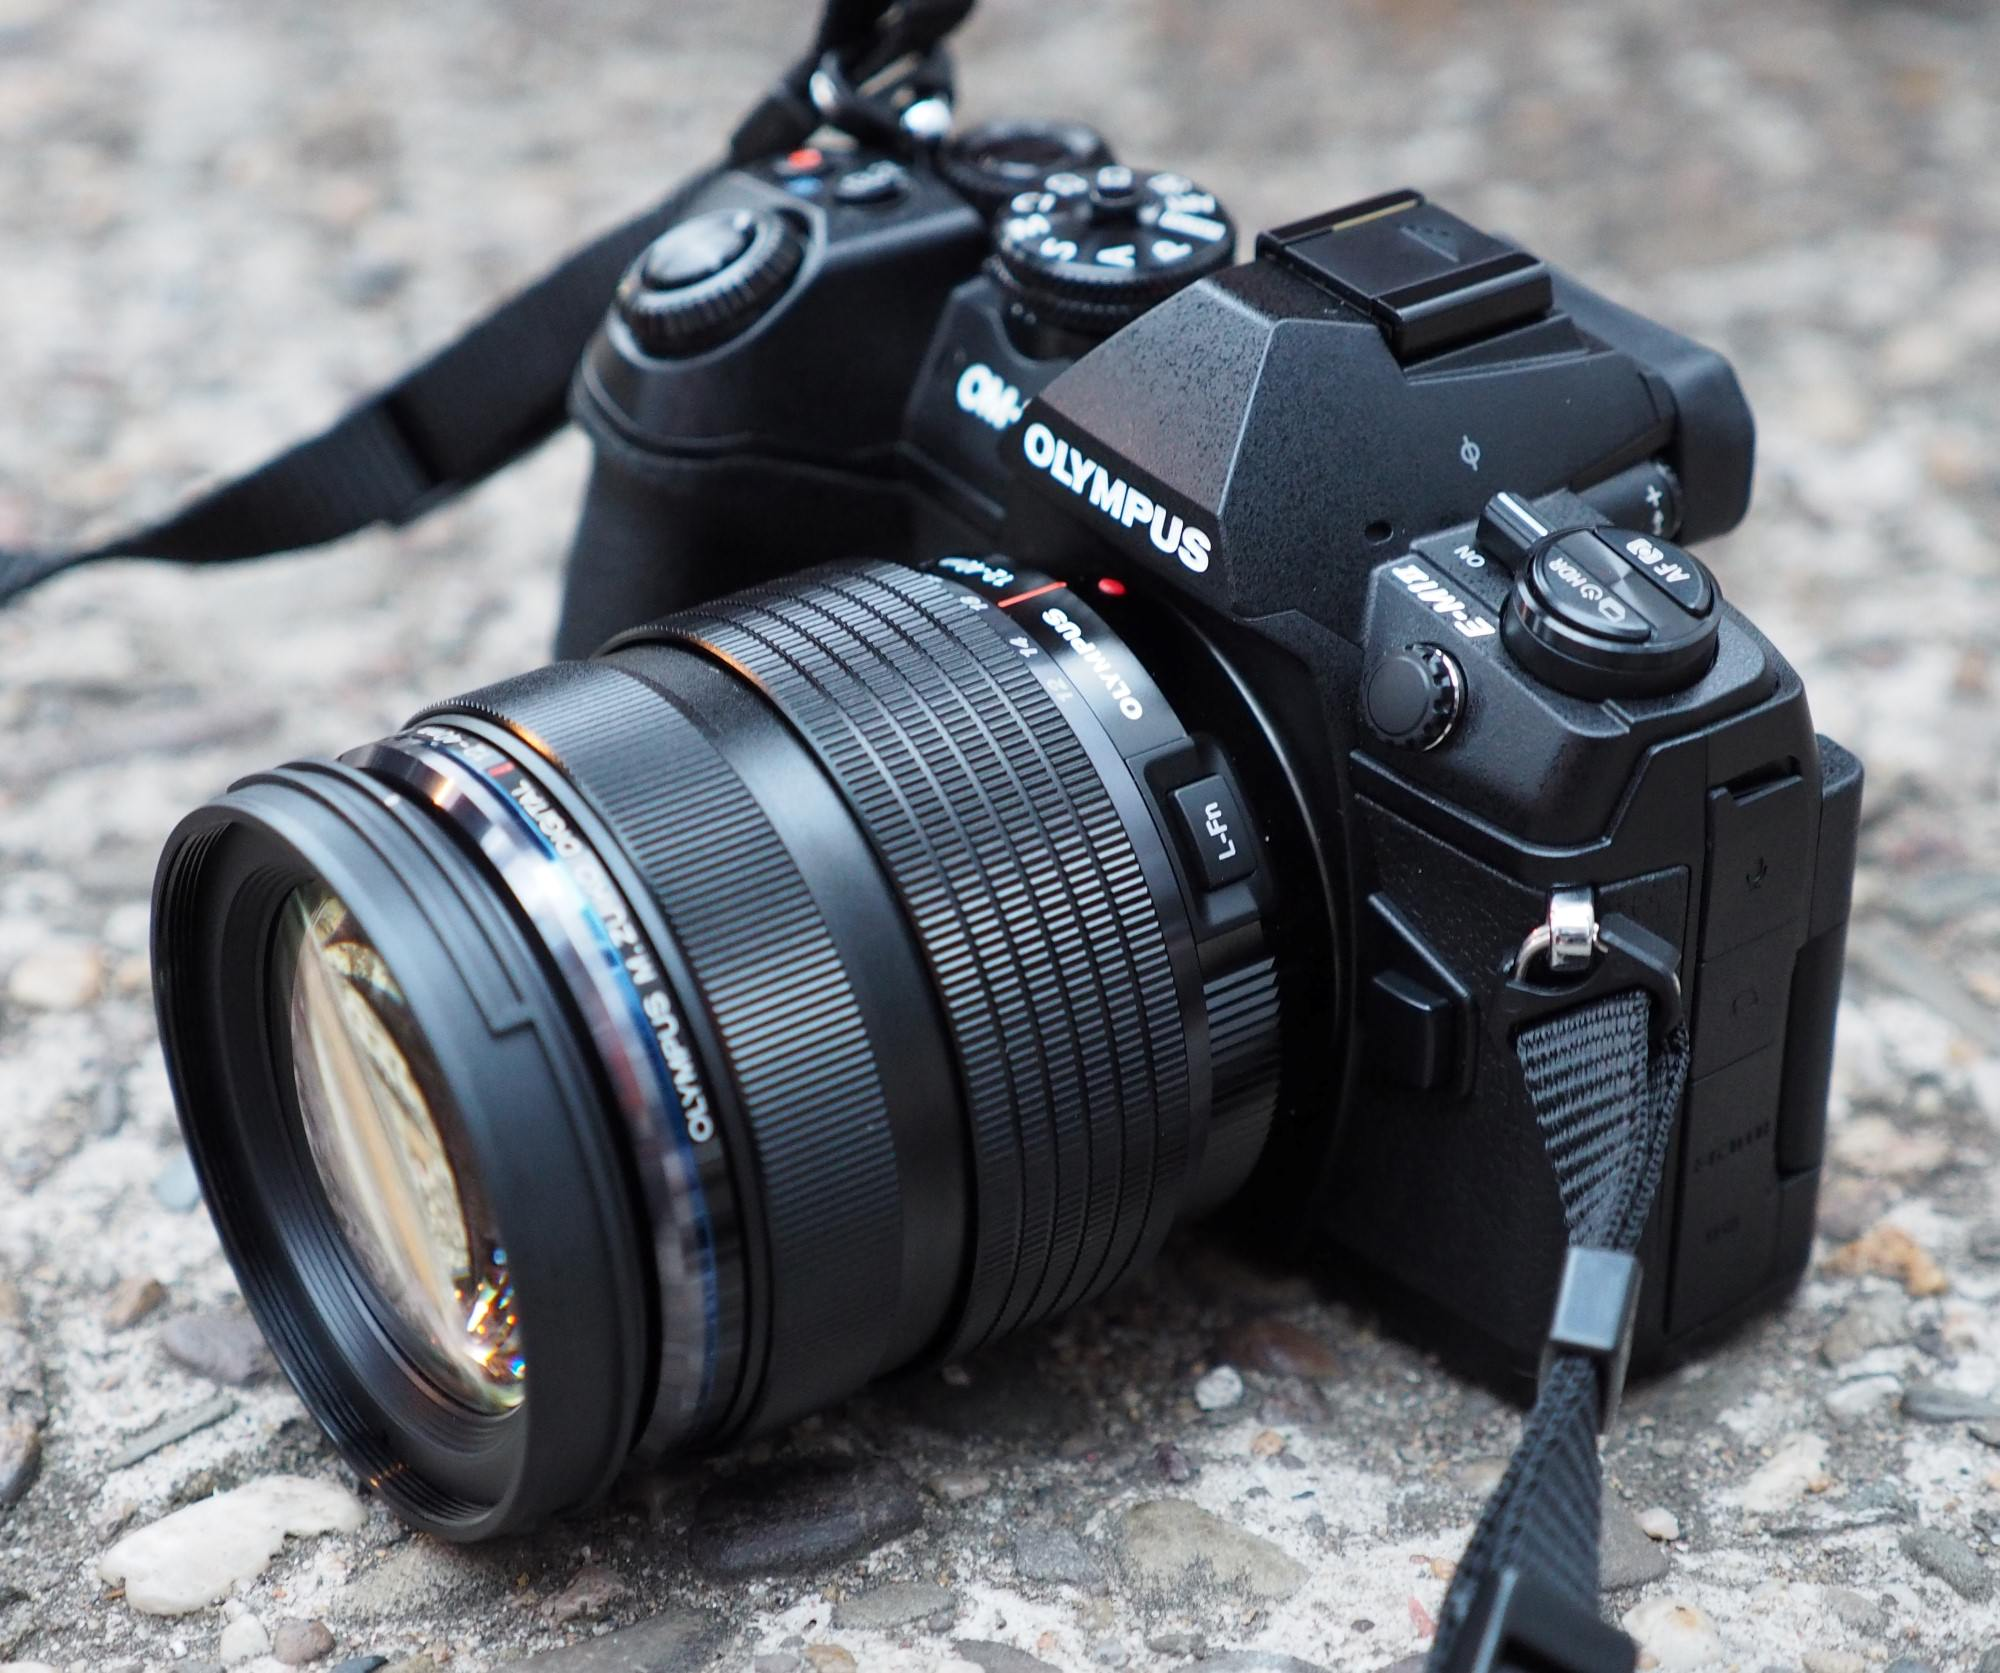 Olympus OM-D E-M1 Mark II Full Review | ePHOTOzine